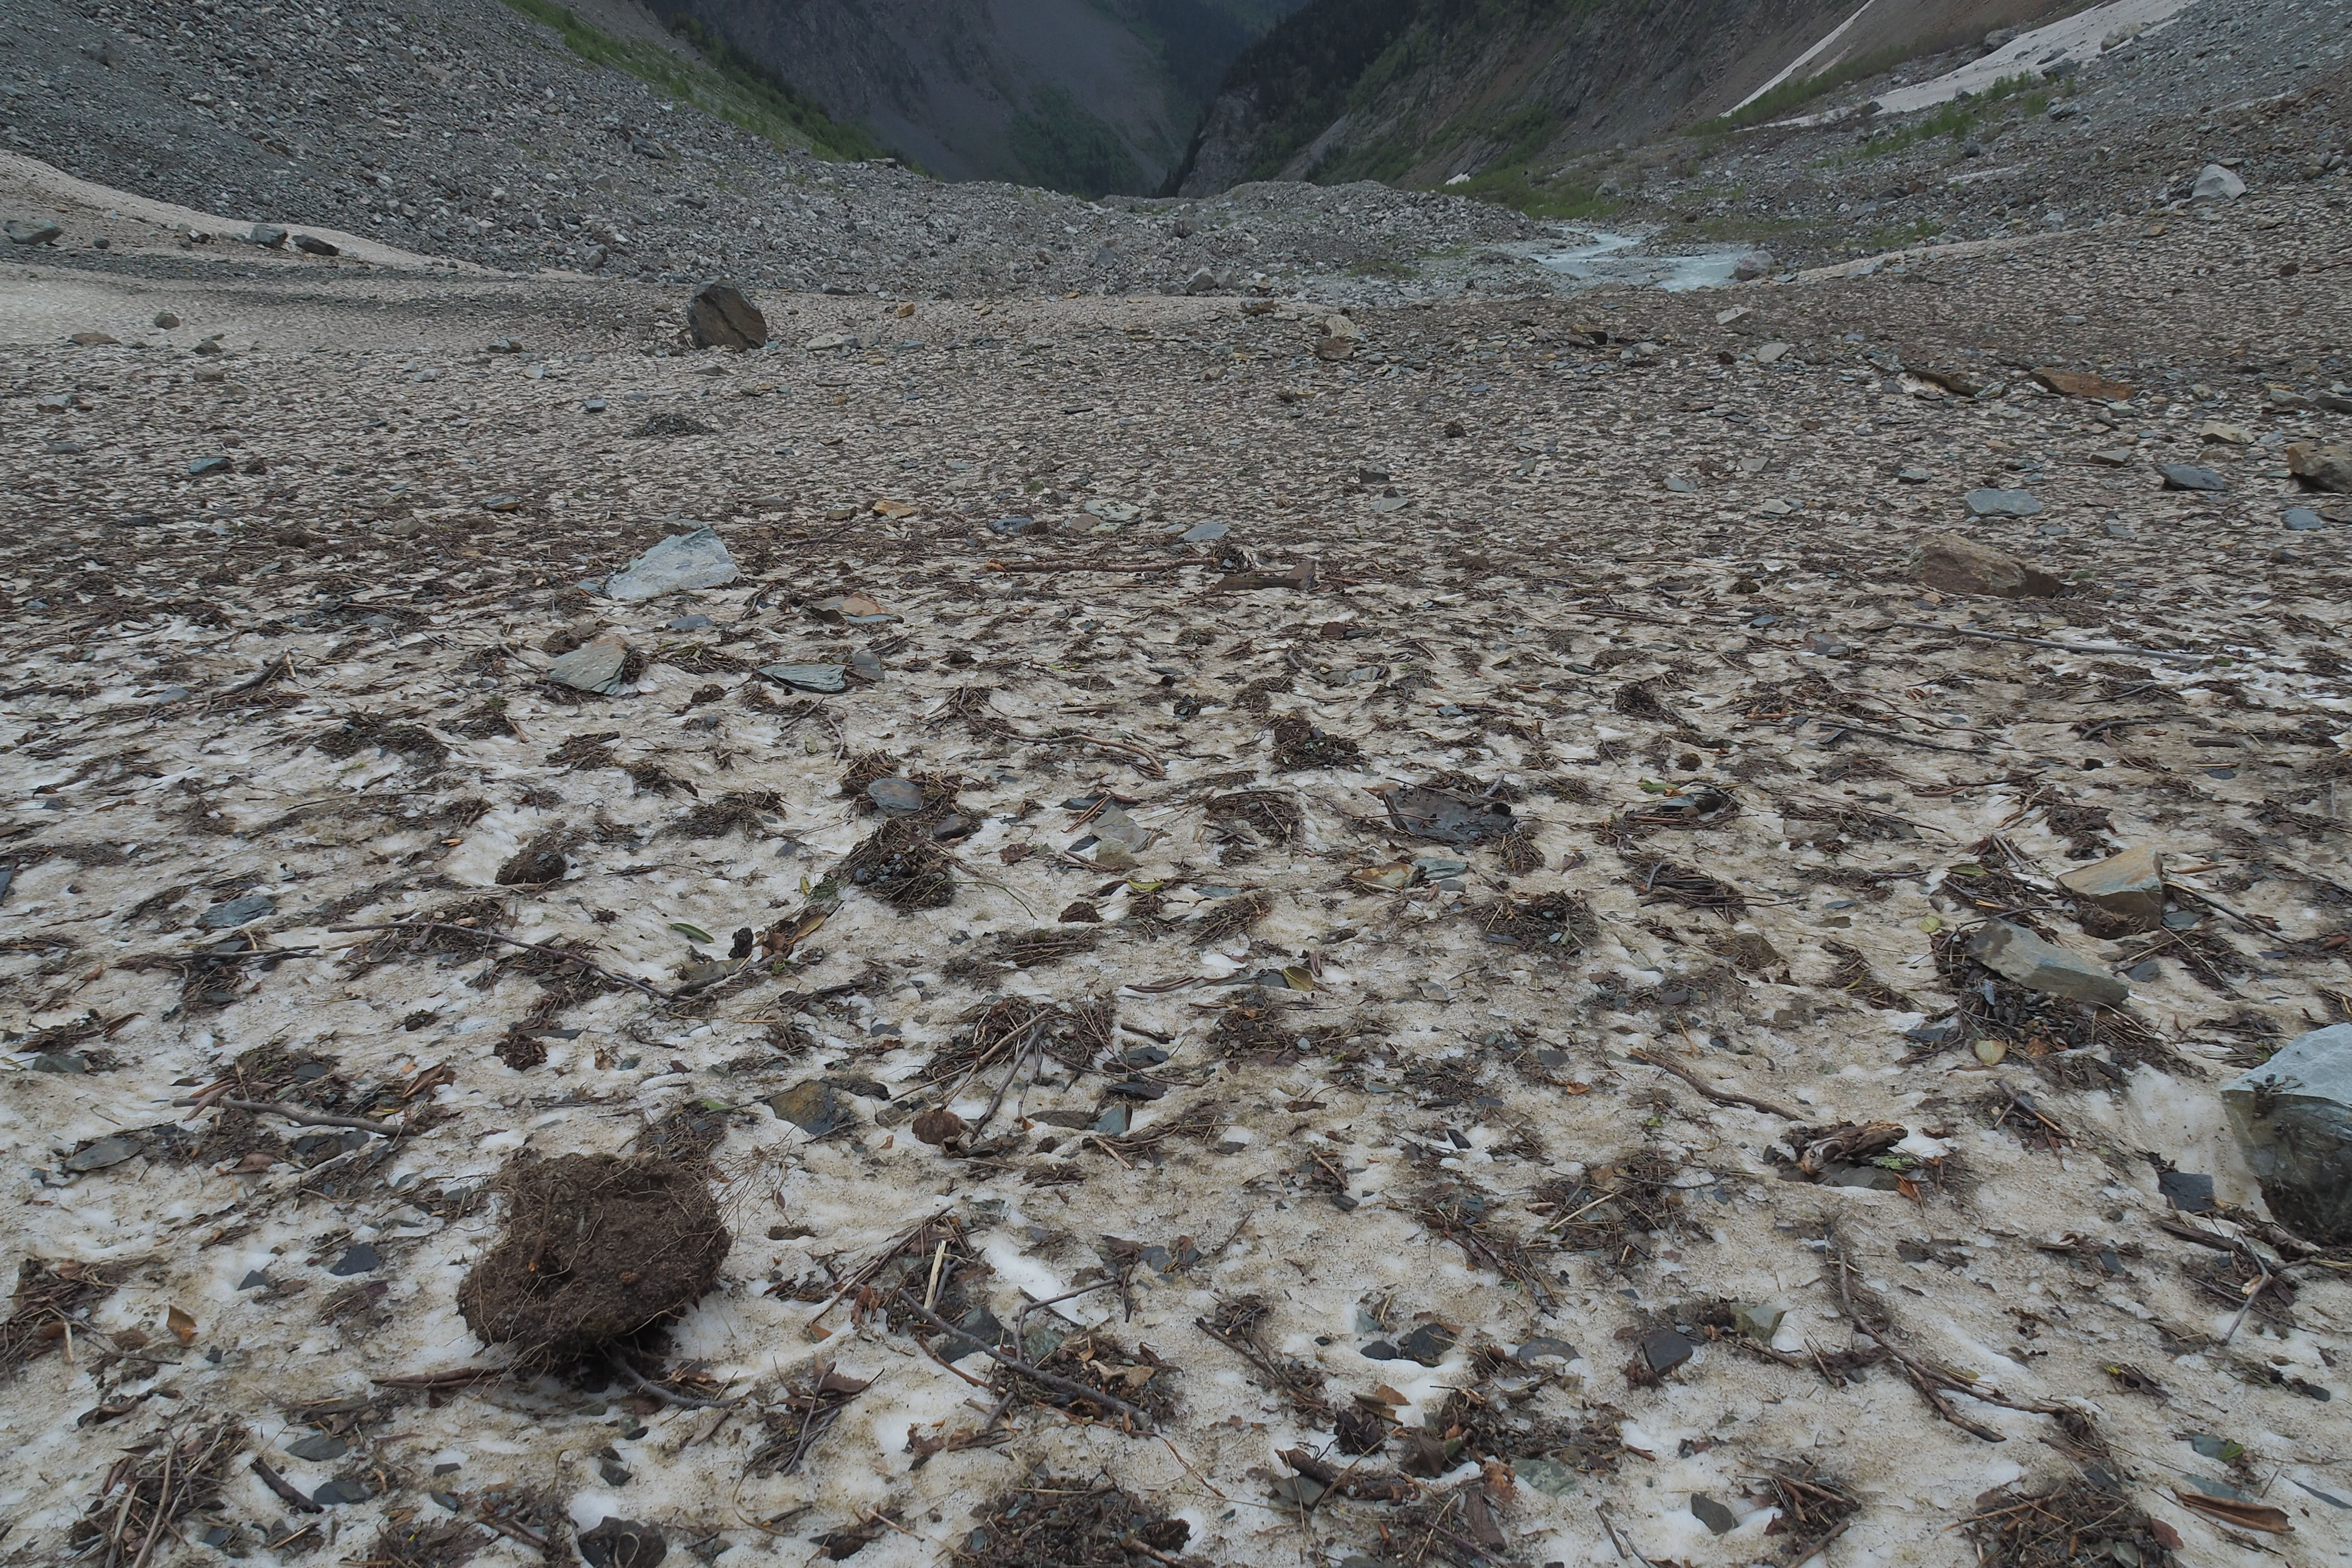 the tough of the glacier with a lot of debries